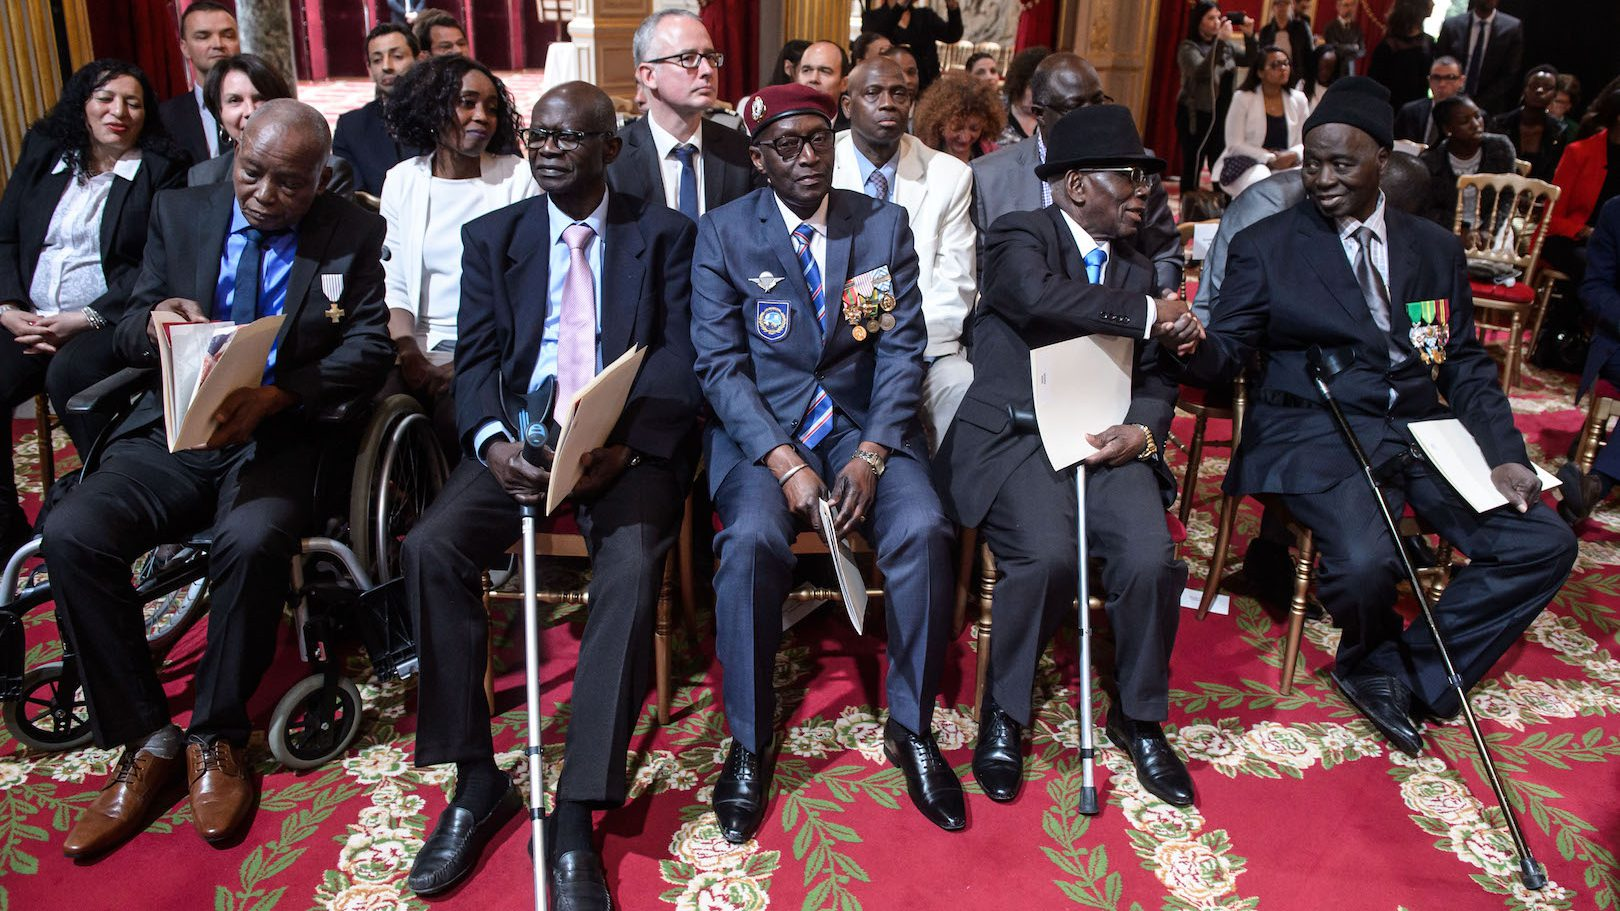 epa05908822 Veterans wait during President Francois Hollande's speech (not pictured) as part of a ceremony to award French citizenship to former Senegalese riflemen veterans at the Elysee Palace in Paris, France, 15 April 2017.